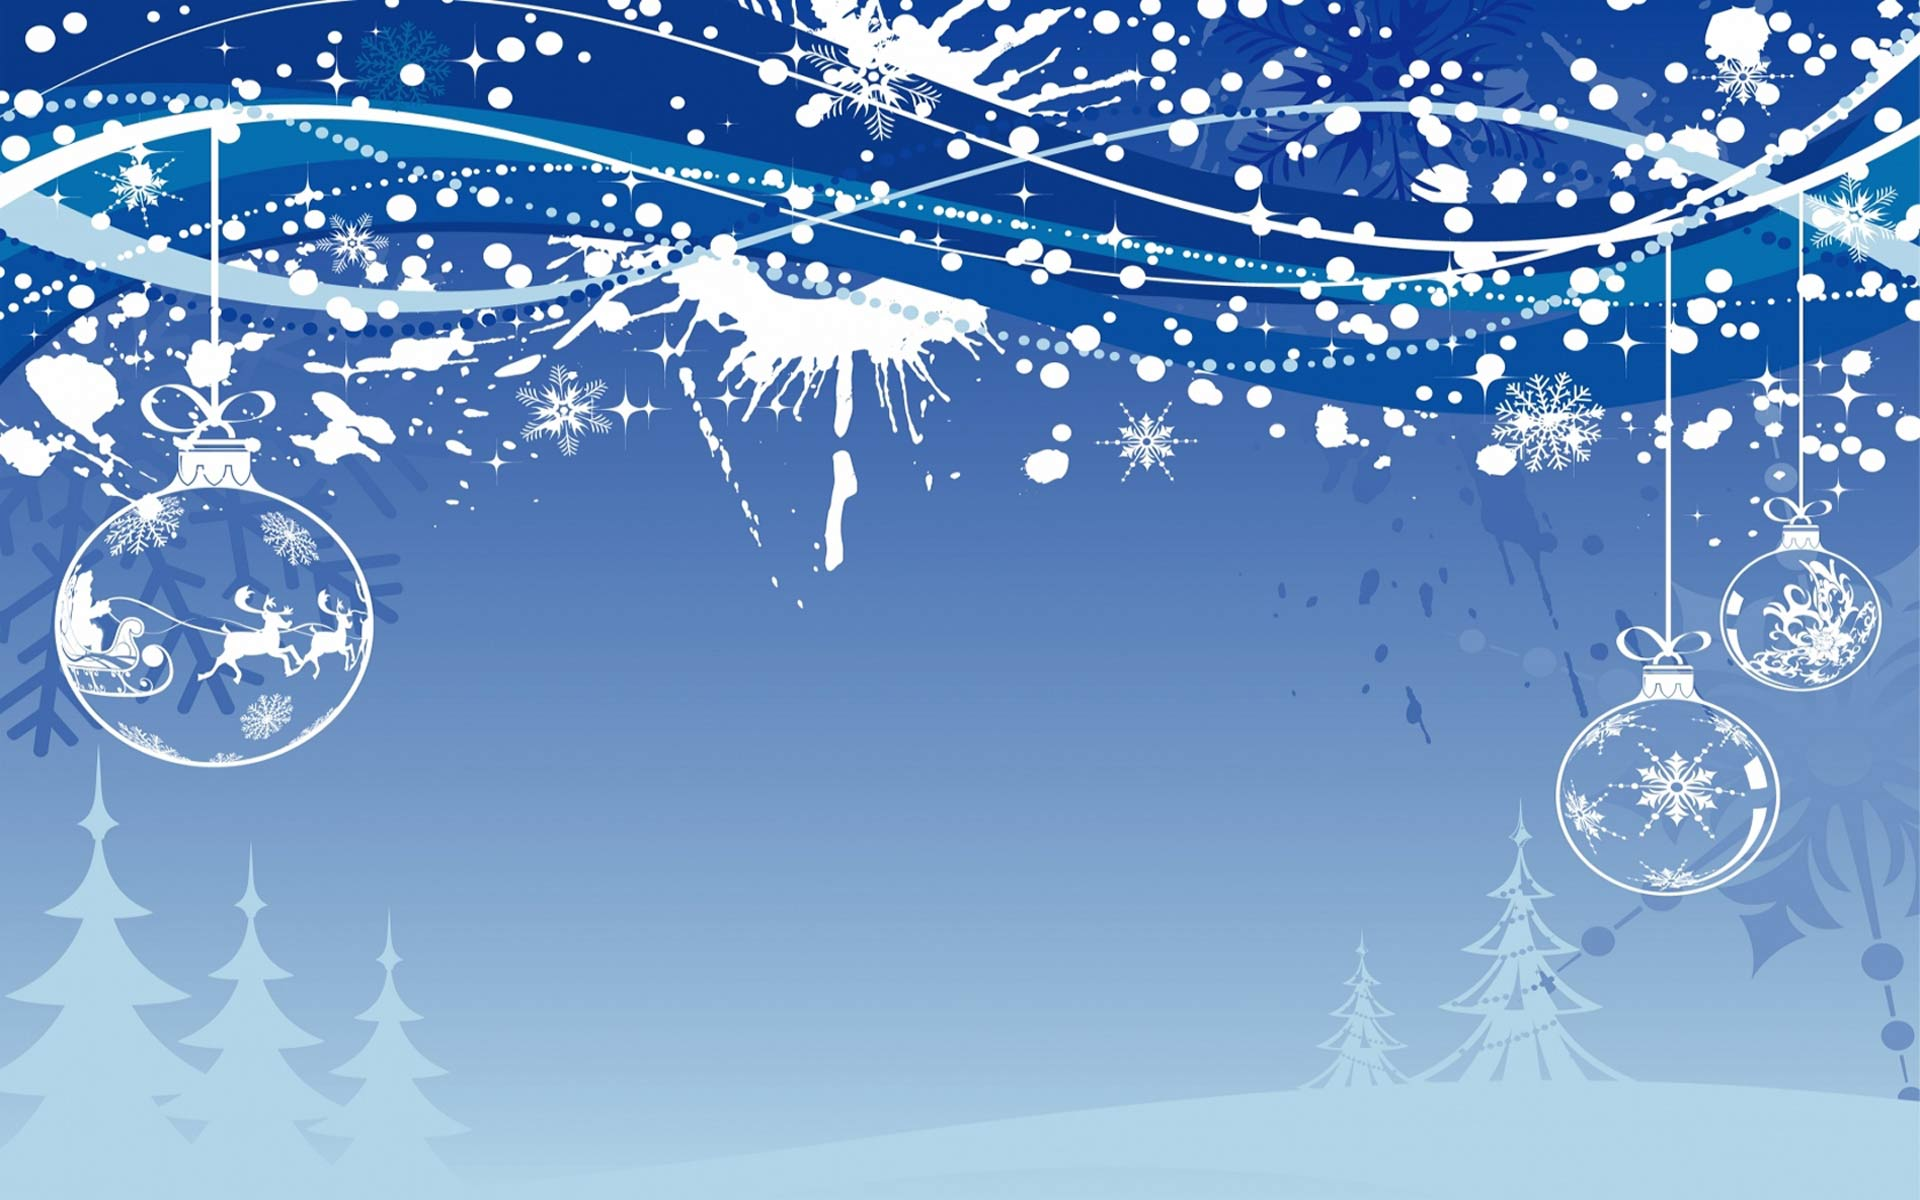 live christmas wallpaper for desktop   wwwwallpapers in hdcom 1920x1200